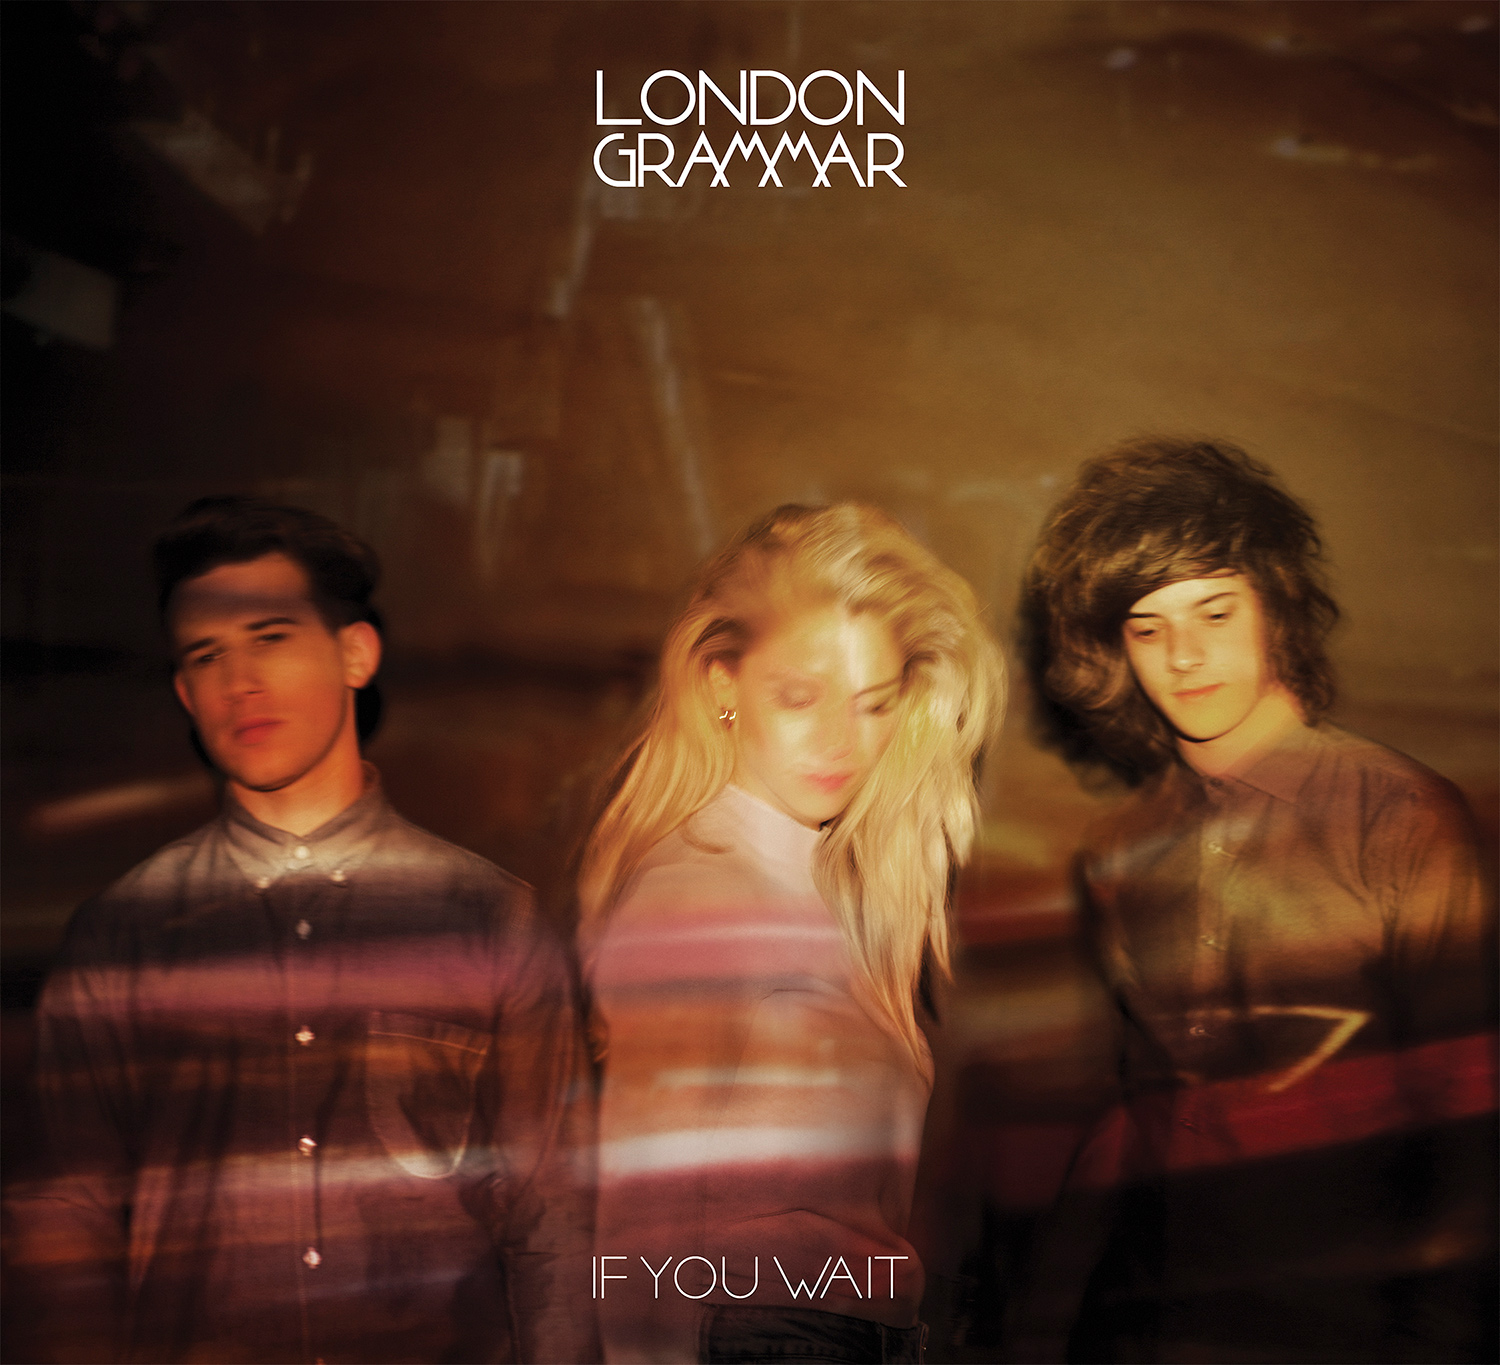 London Grammar 'If You Wait' MINISTRY OF SOUND  1 Image